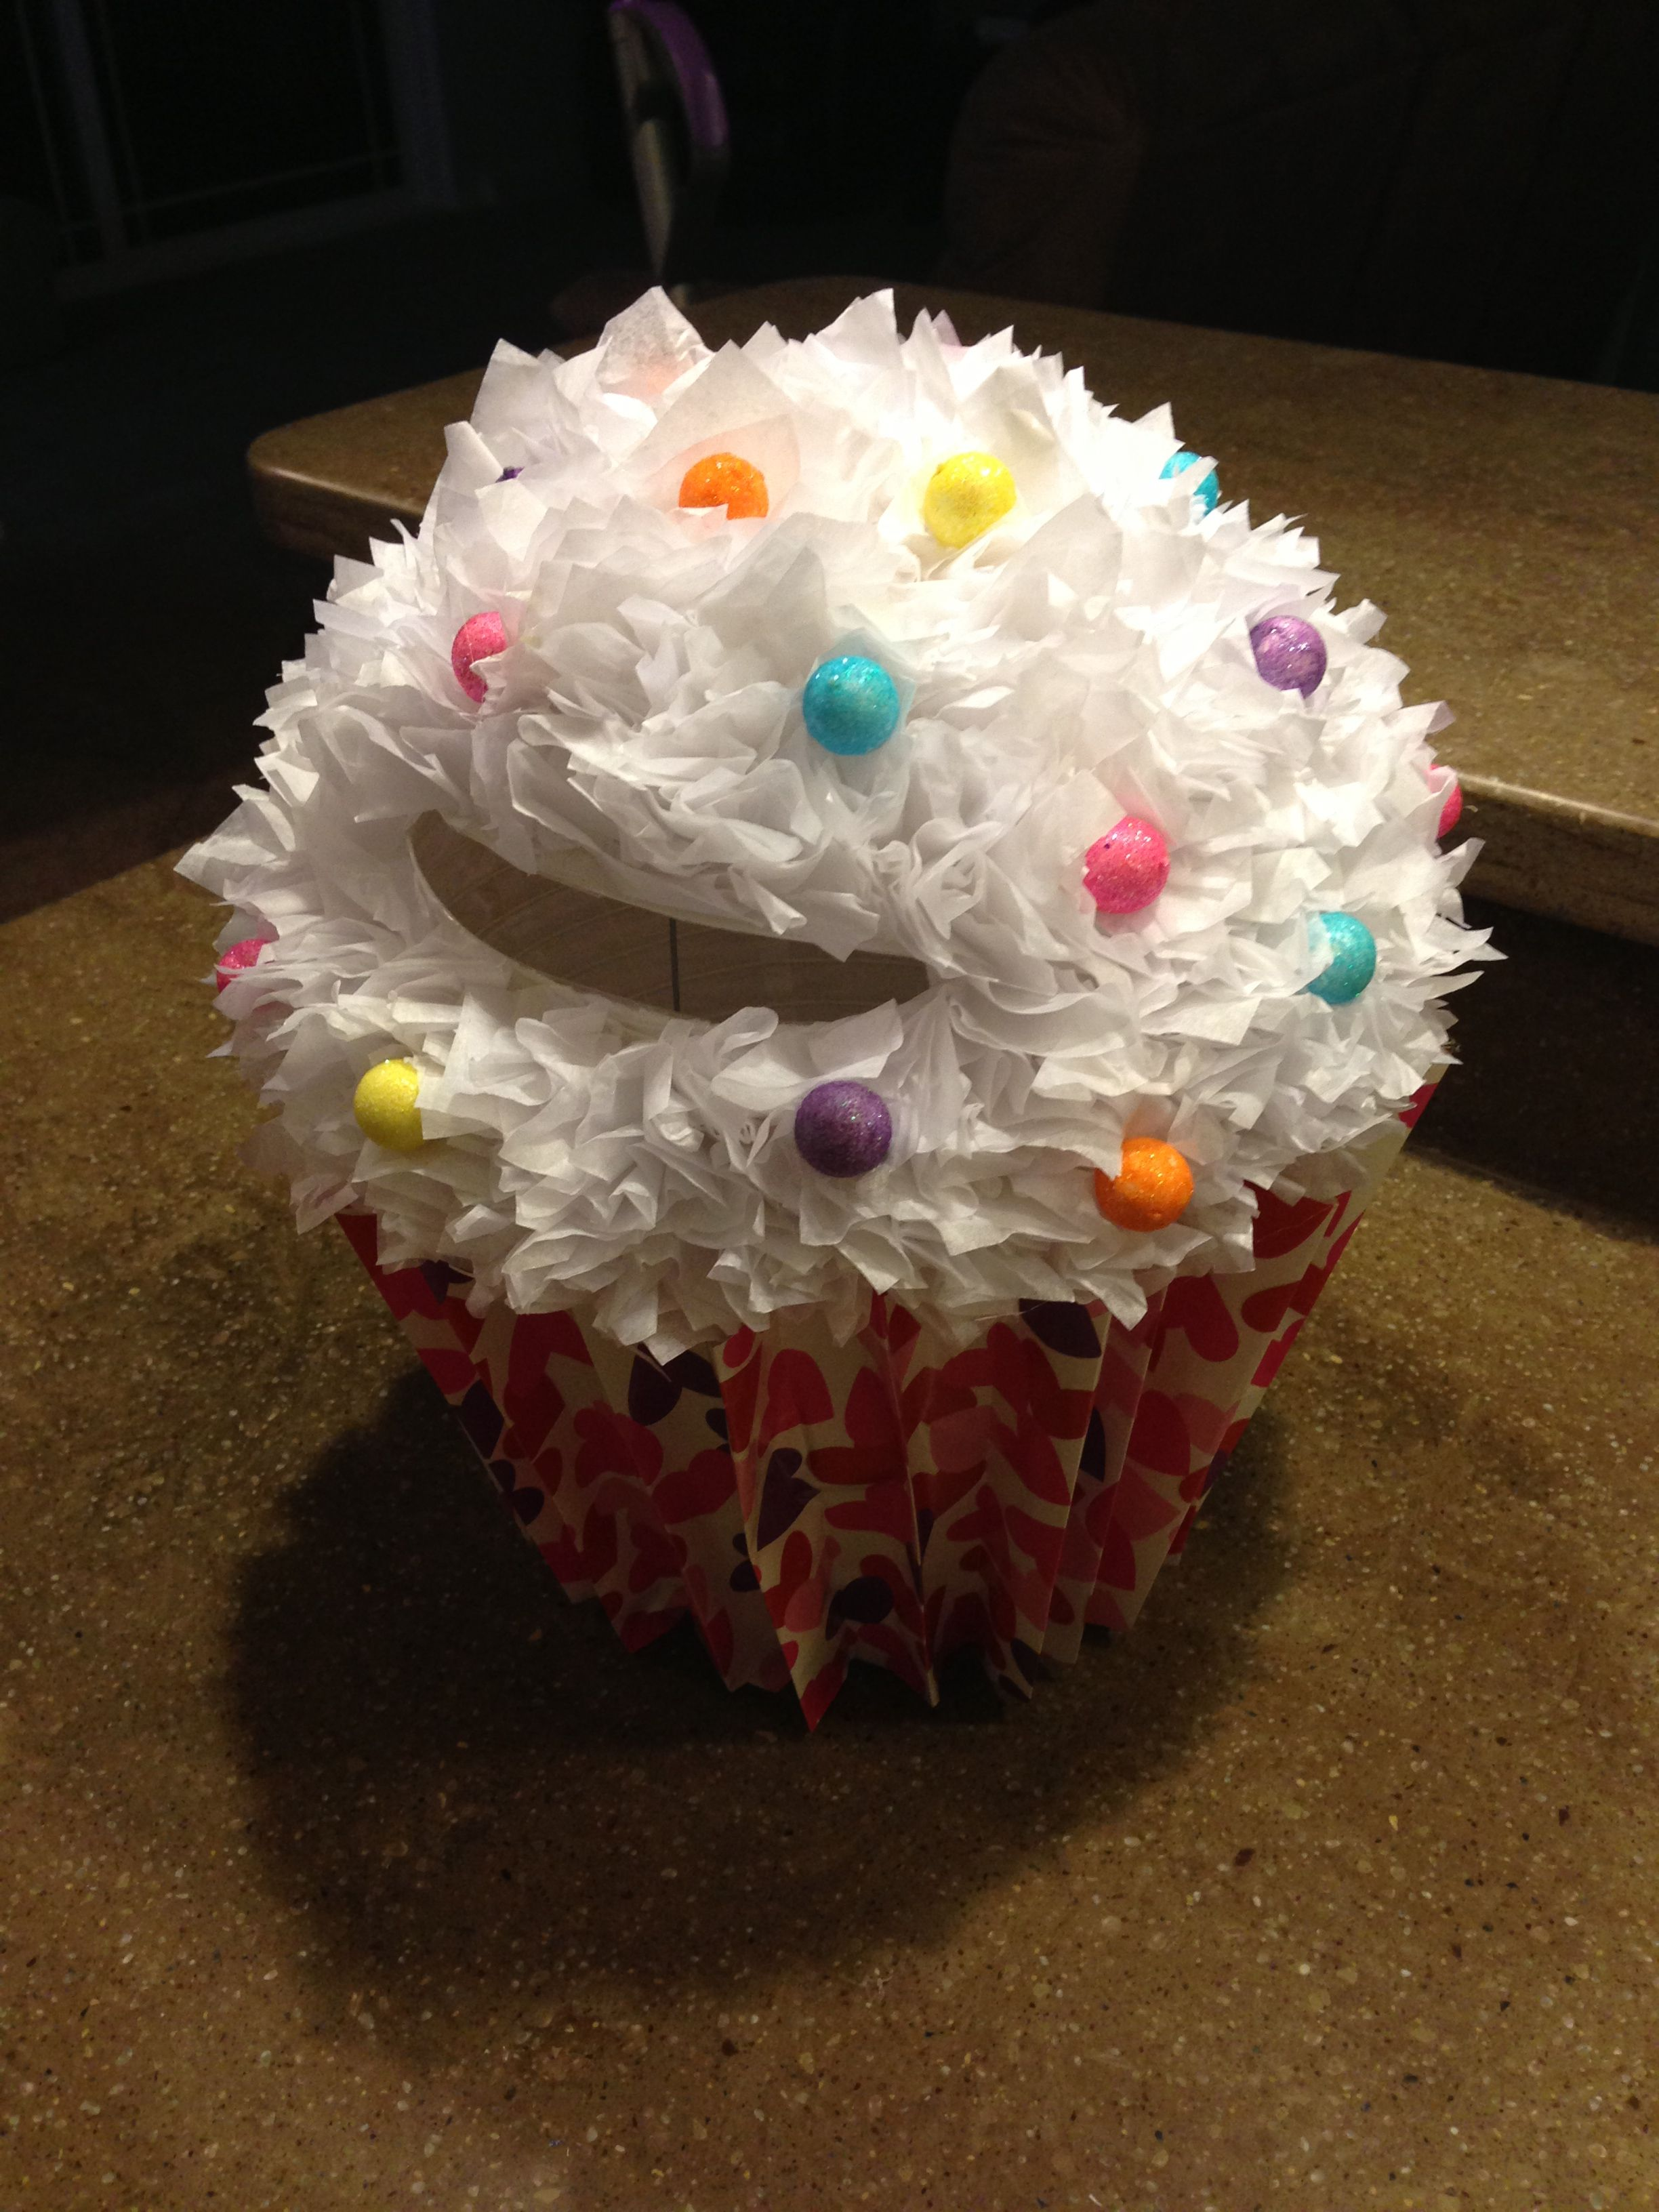 paiges cupcake valentine box plastic flower pot bottom covered with folded wrapping paper - Cupcake Valentine Box